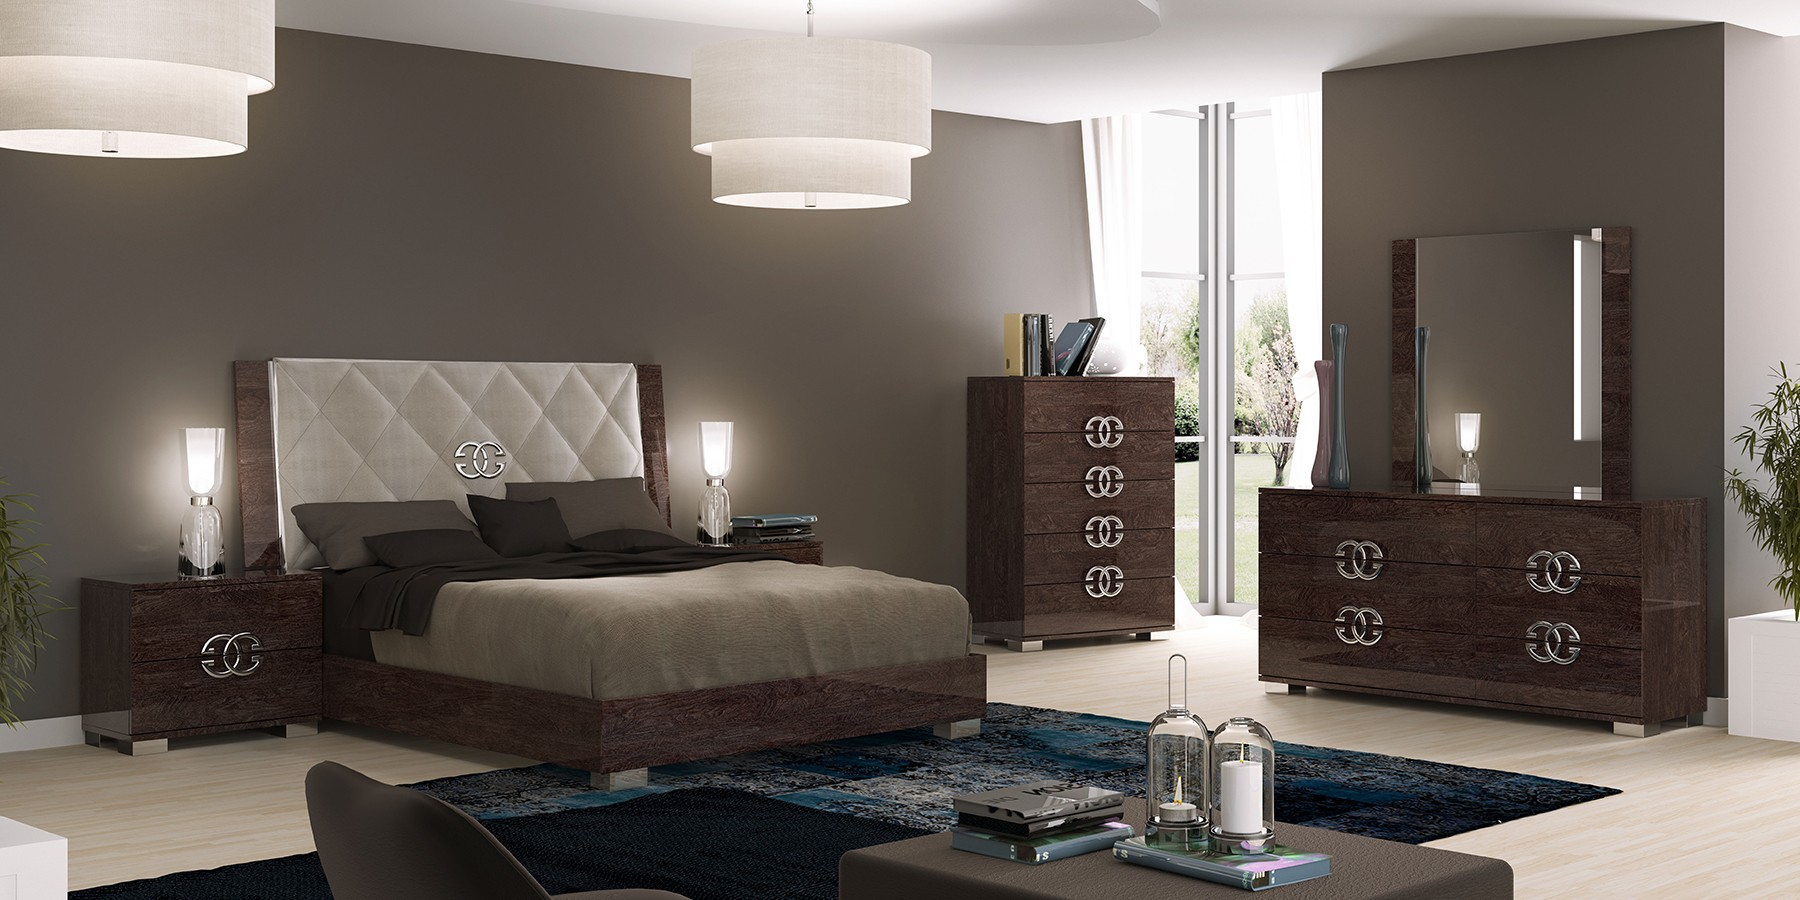 outstanding modern contemporary bedroom furniture | Pride Delux Modern Italian Bedroom set - N - Modern ...